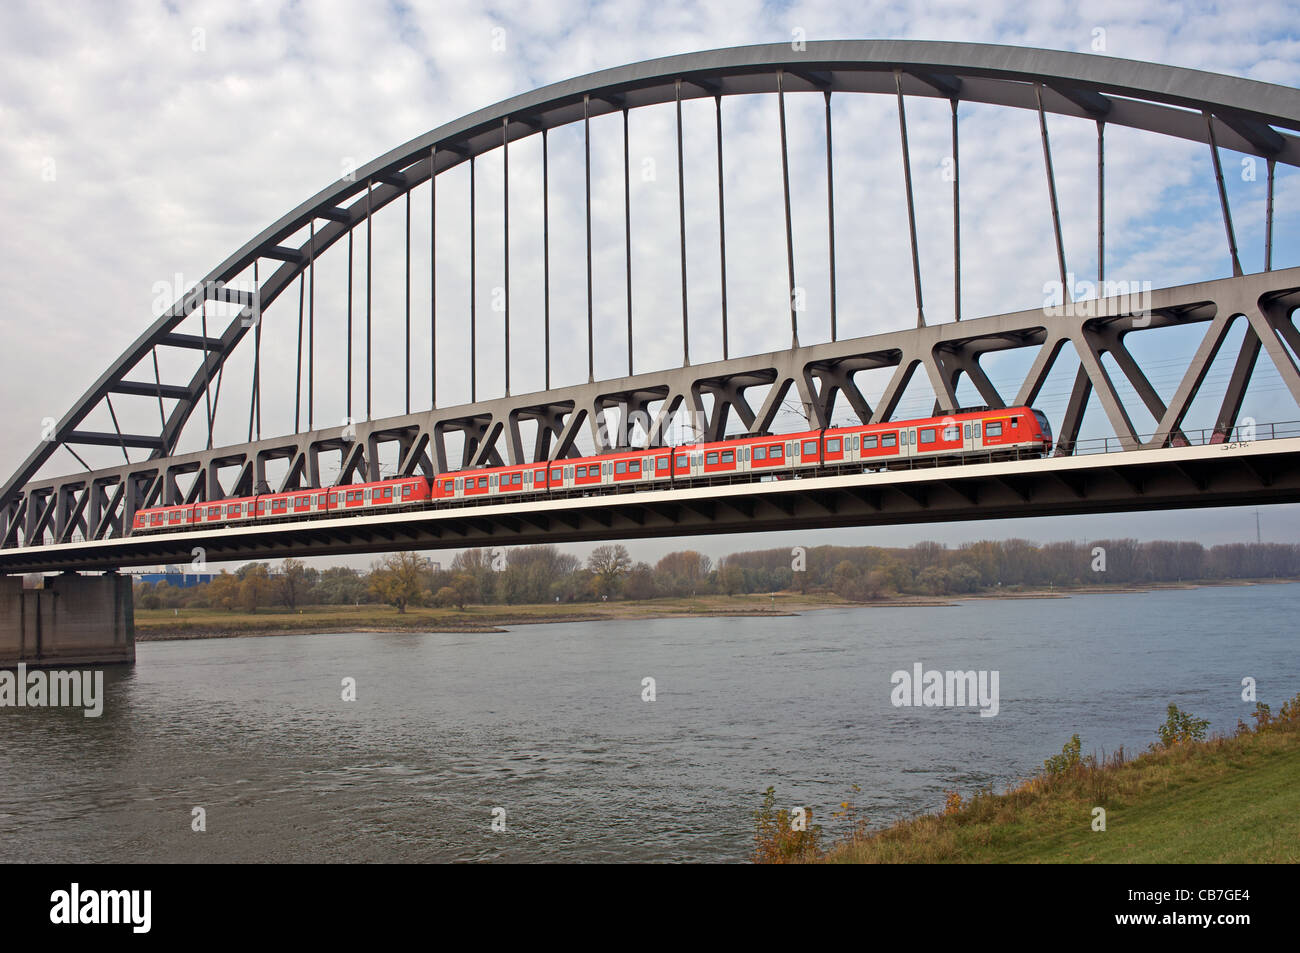 Railway bridge with a Rhine-Ruhr S-Bahn (suburban passenger train) crossing river Rhine, Dusseldorf, Germany. Stock Photo